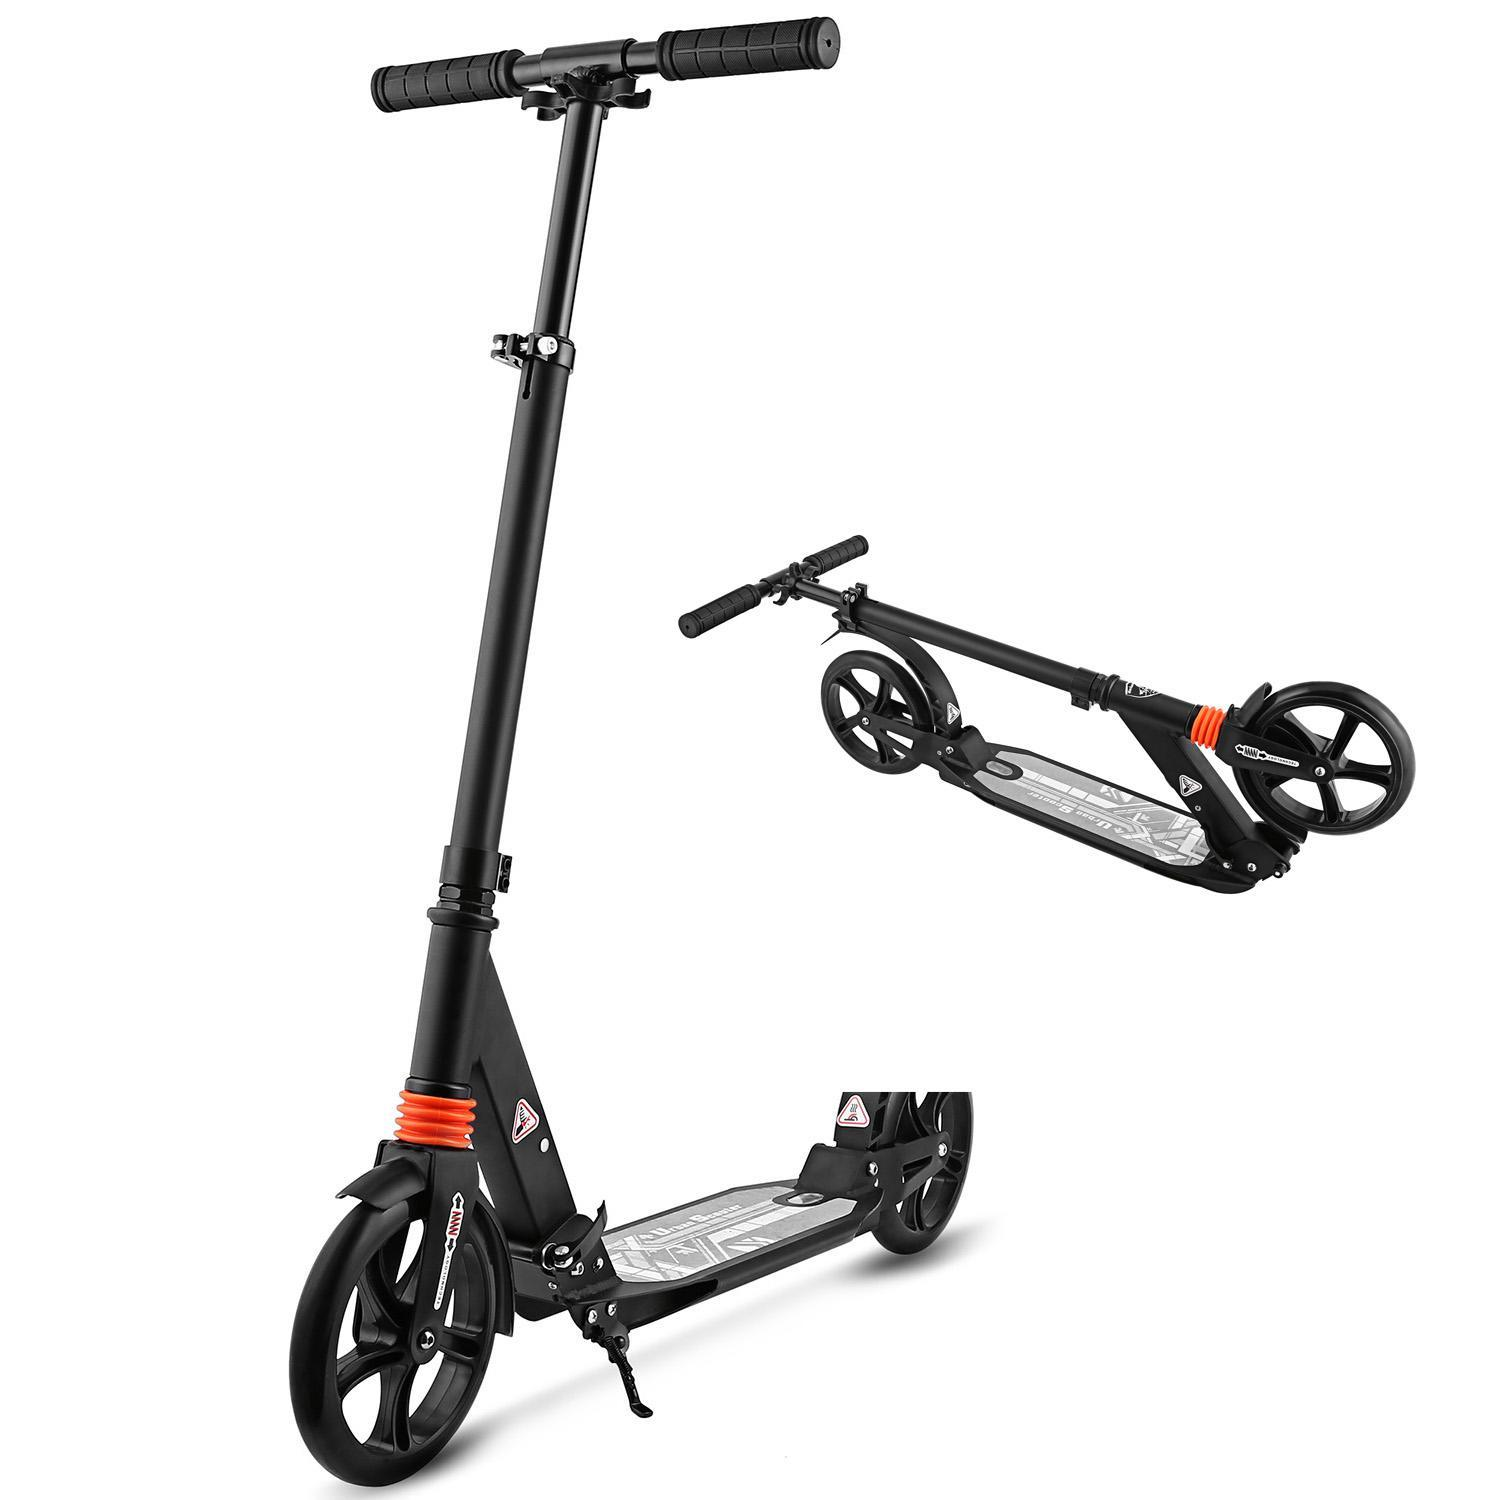 Clearance! Adult Teen Scooter Foldable Design Sturdy Poatable Lightweight Height Adjustable Aluminum Alloy T-Style